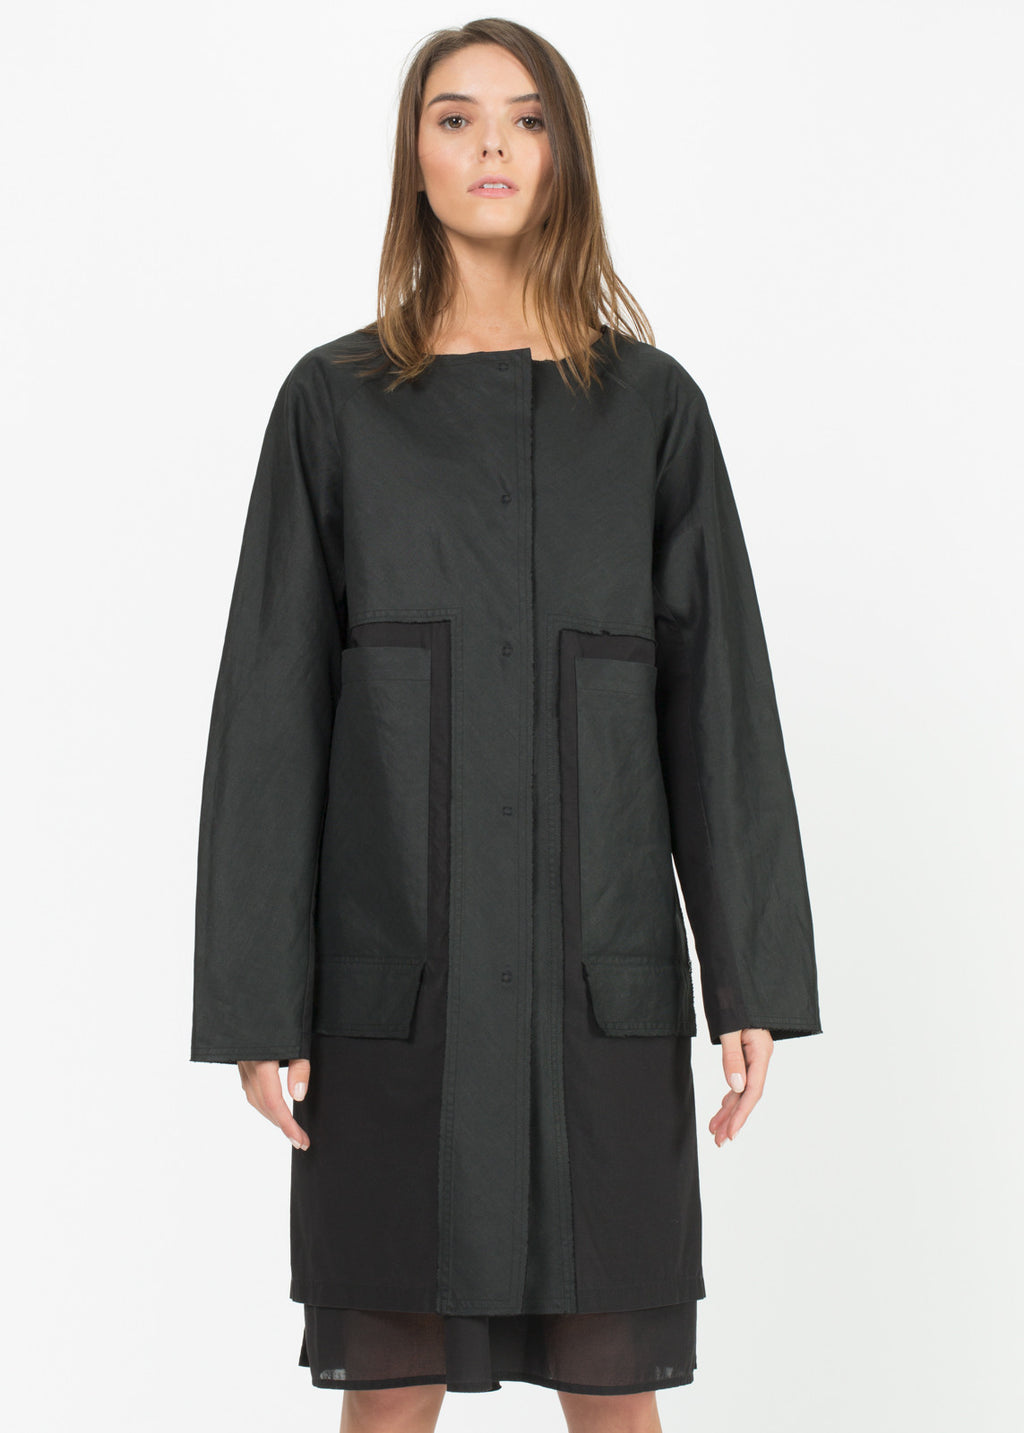 Elma Sheer Coat